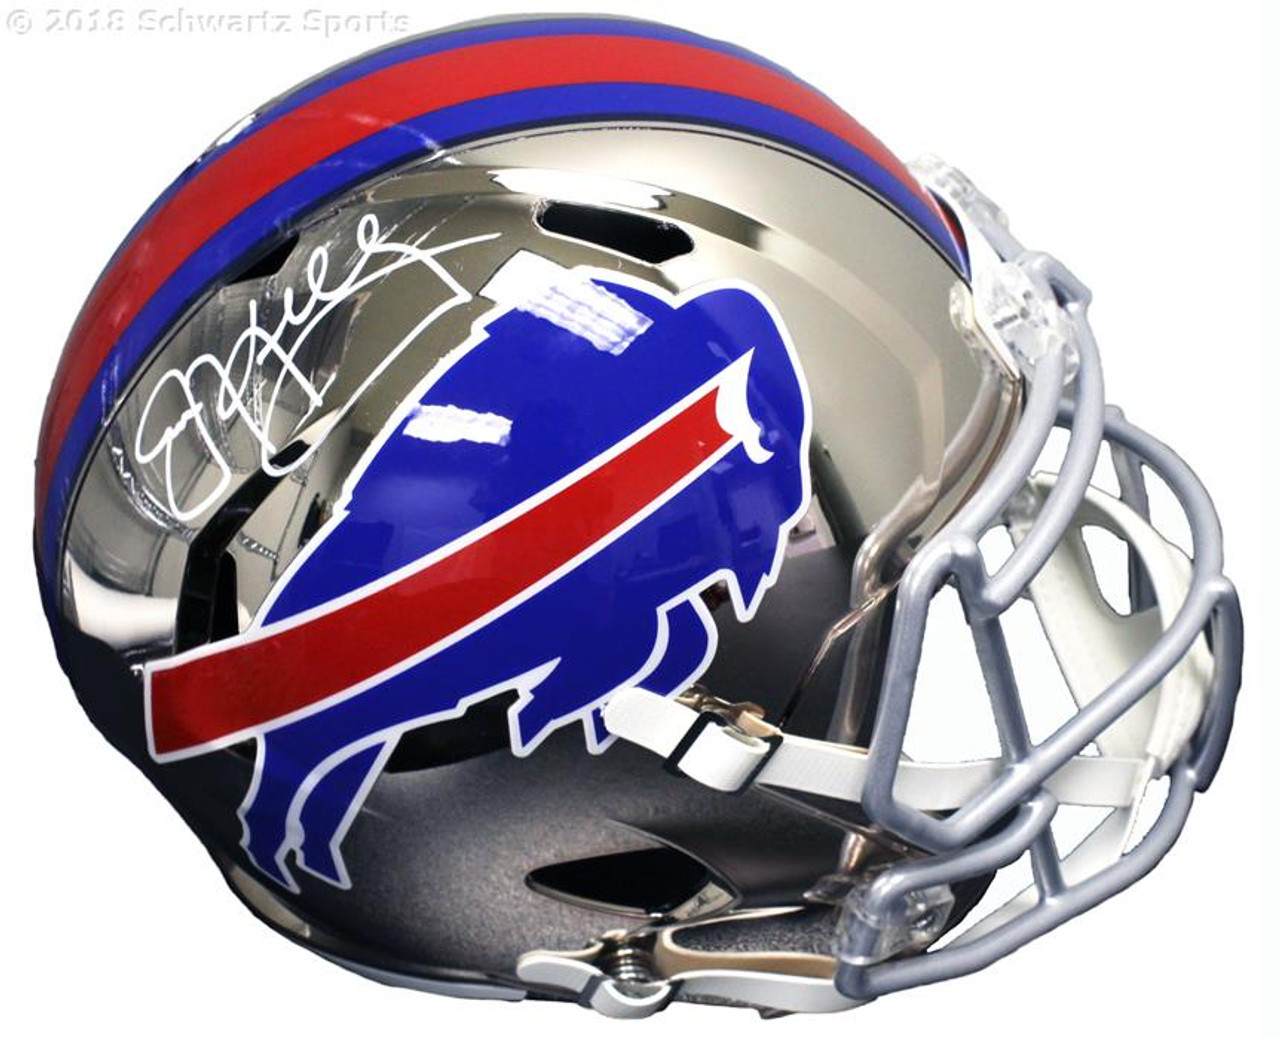 04546d19310 Jim Kelly Buffalo Bills Autographed Chrome Replica Football Helmet ...